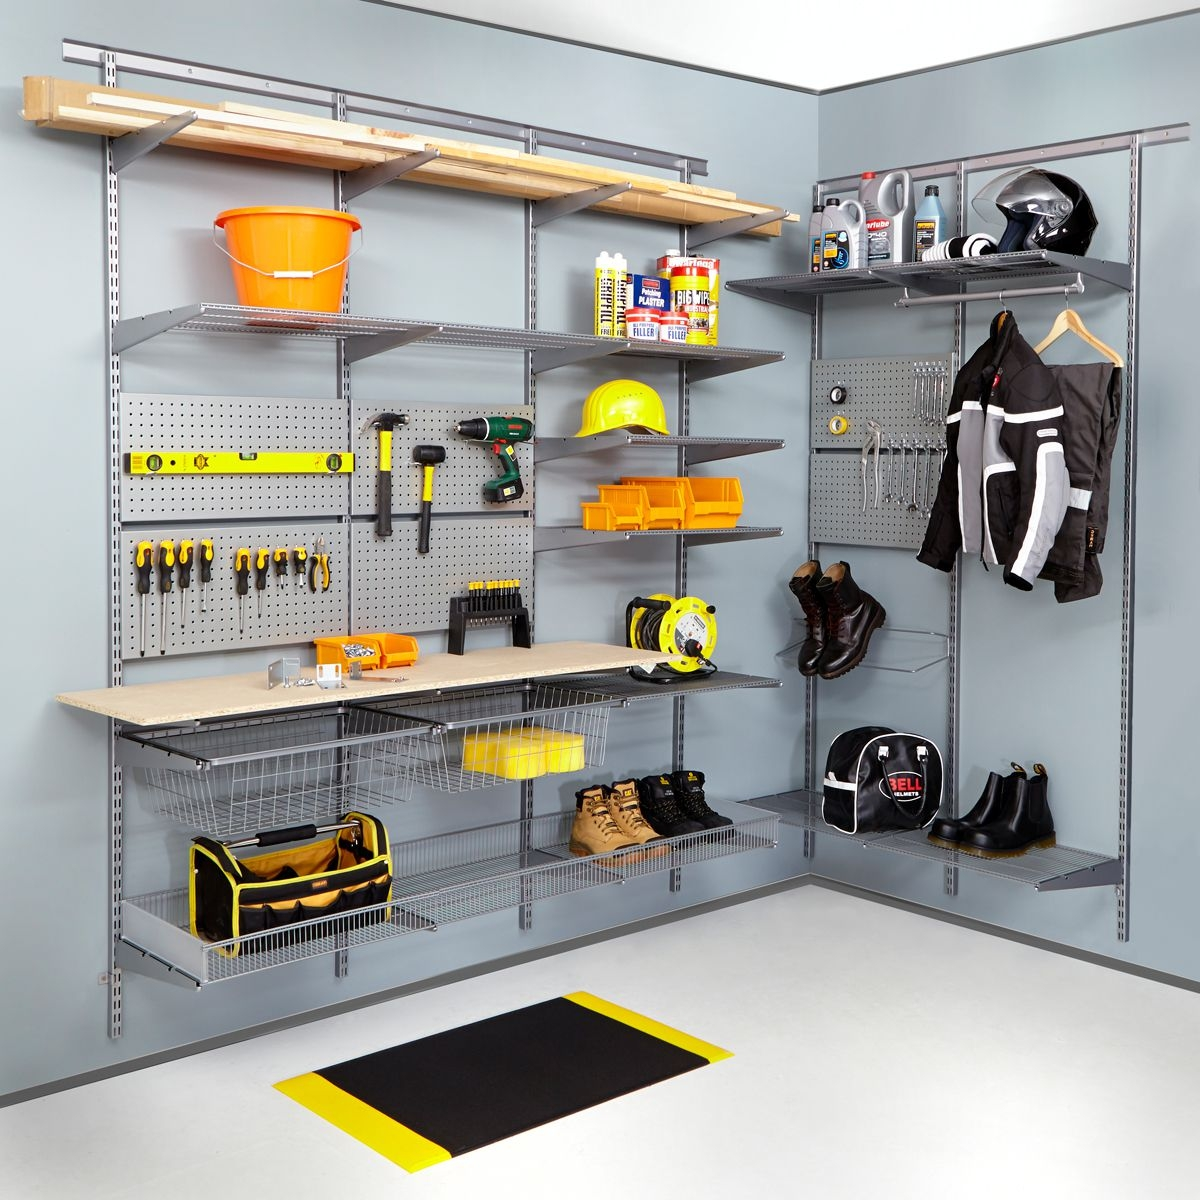 Top Track Wall Mounted Shelving Silver Components - Garage Shelving